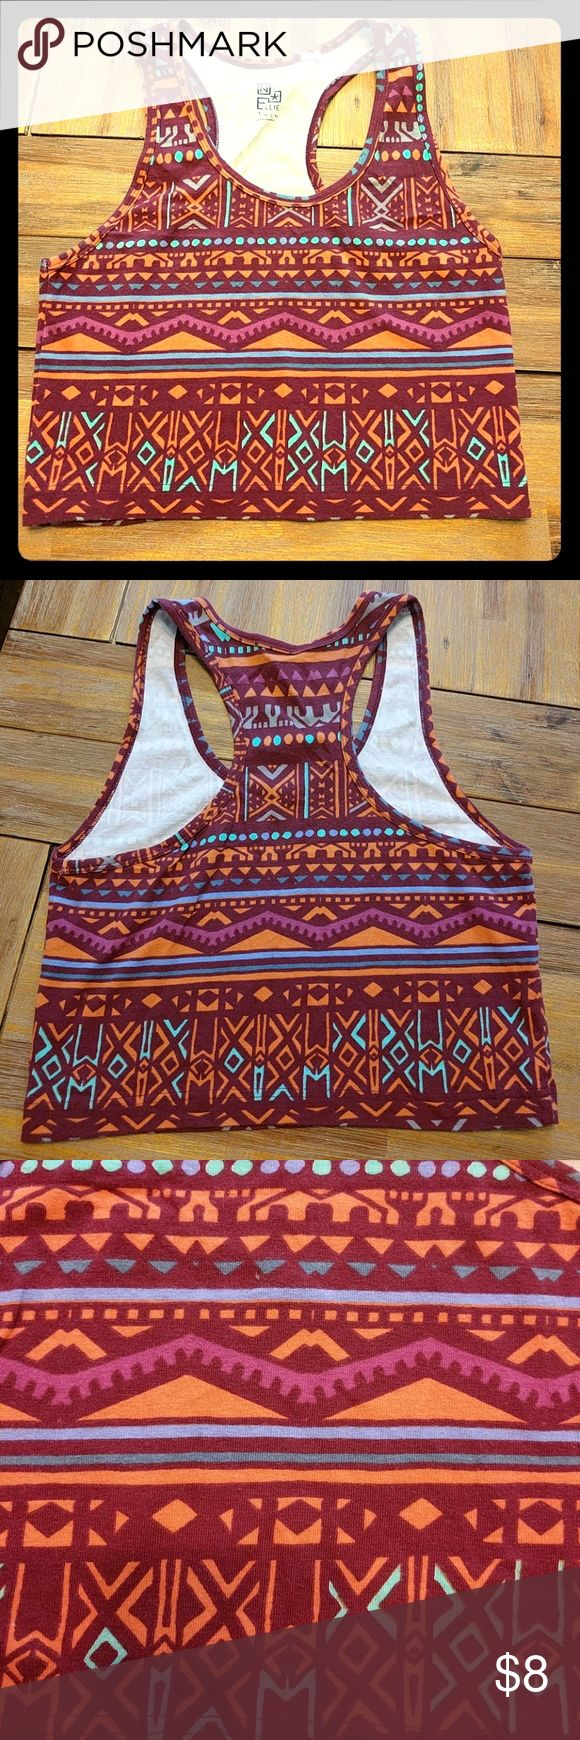 Nollie Aztec Crop Top Exciting Aztec crop top! Perfect for a music festival or day at the beach!! Get ready for summer!!! Nollie Tops Crop Tops